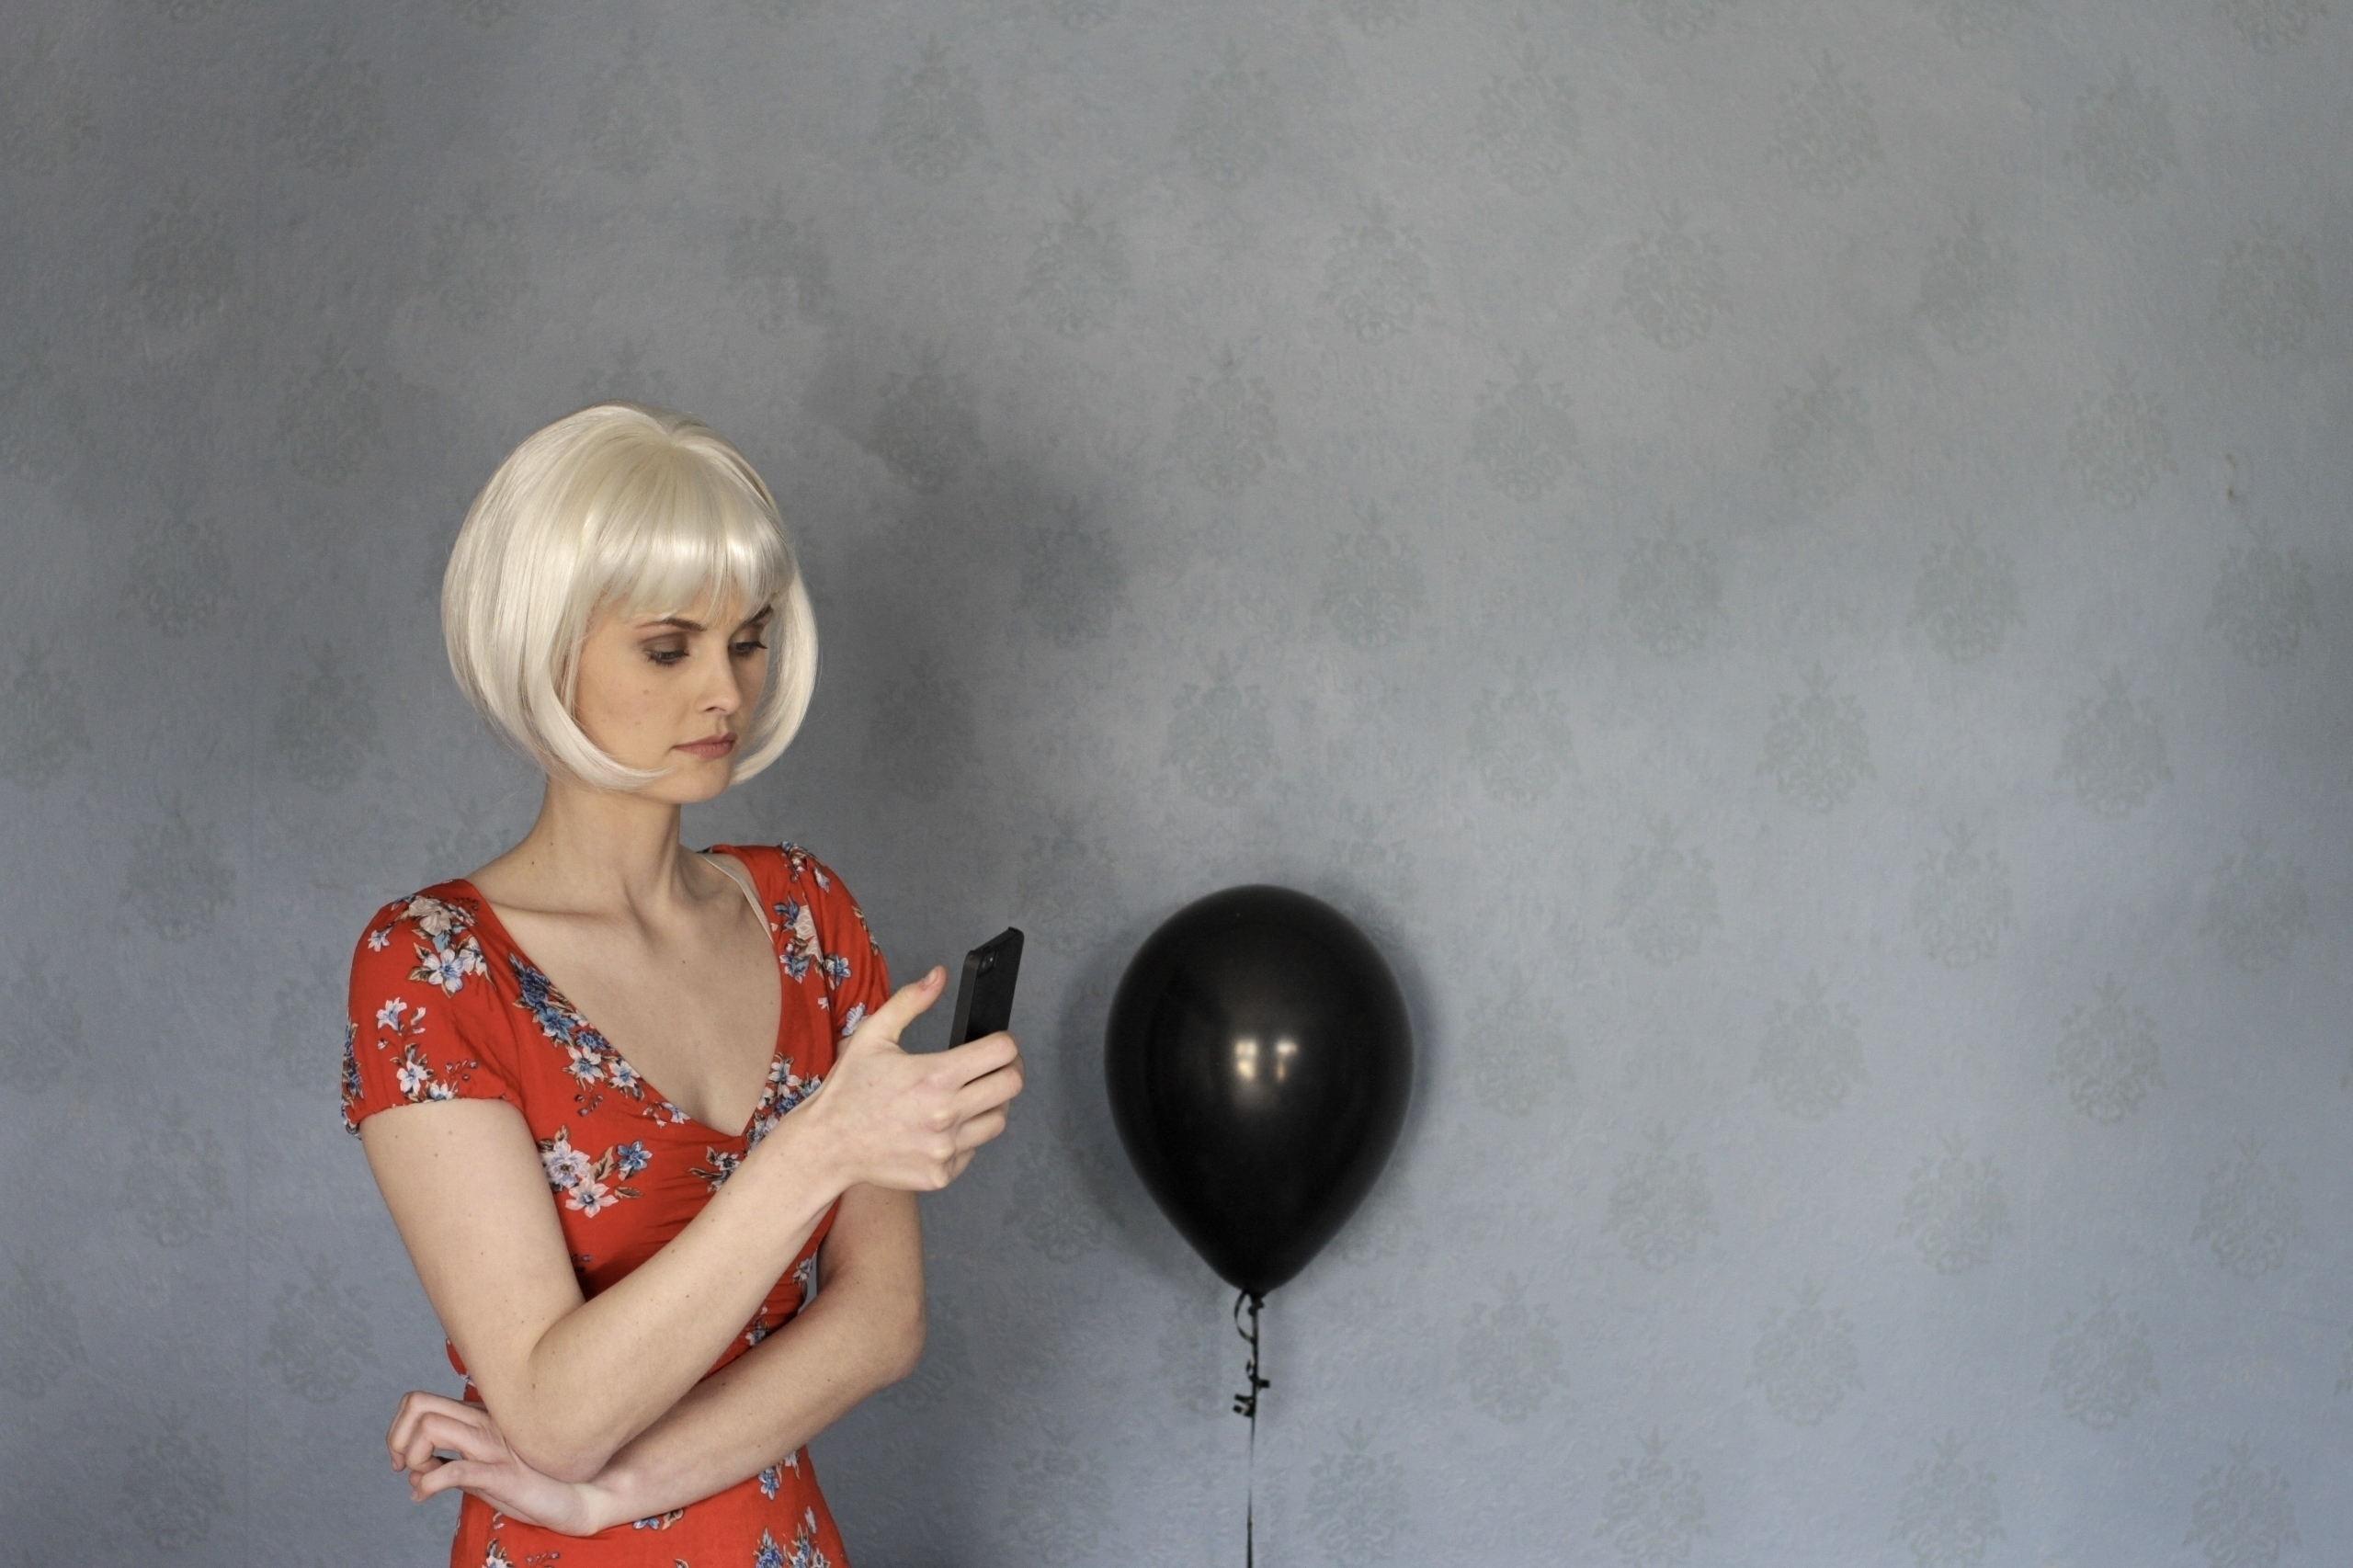 Woman mobile black balloon - st - phil_levene | ello